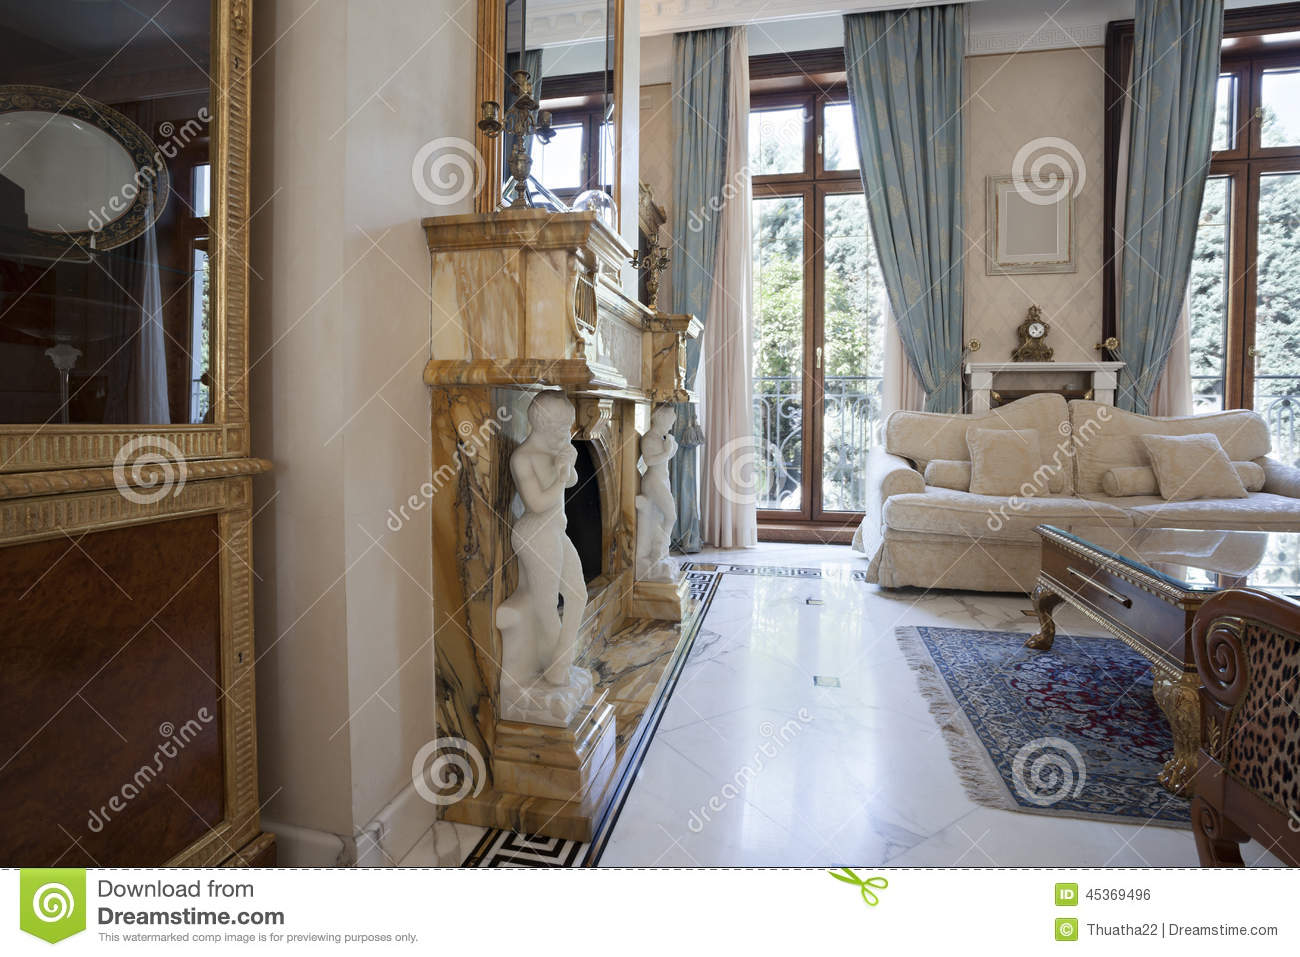 Interior of a living room with fireplace in luxury villa